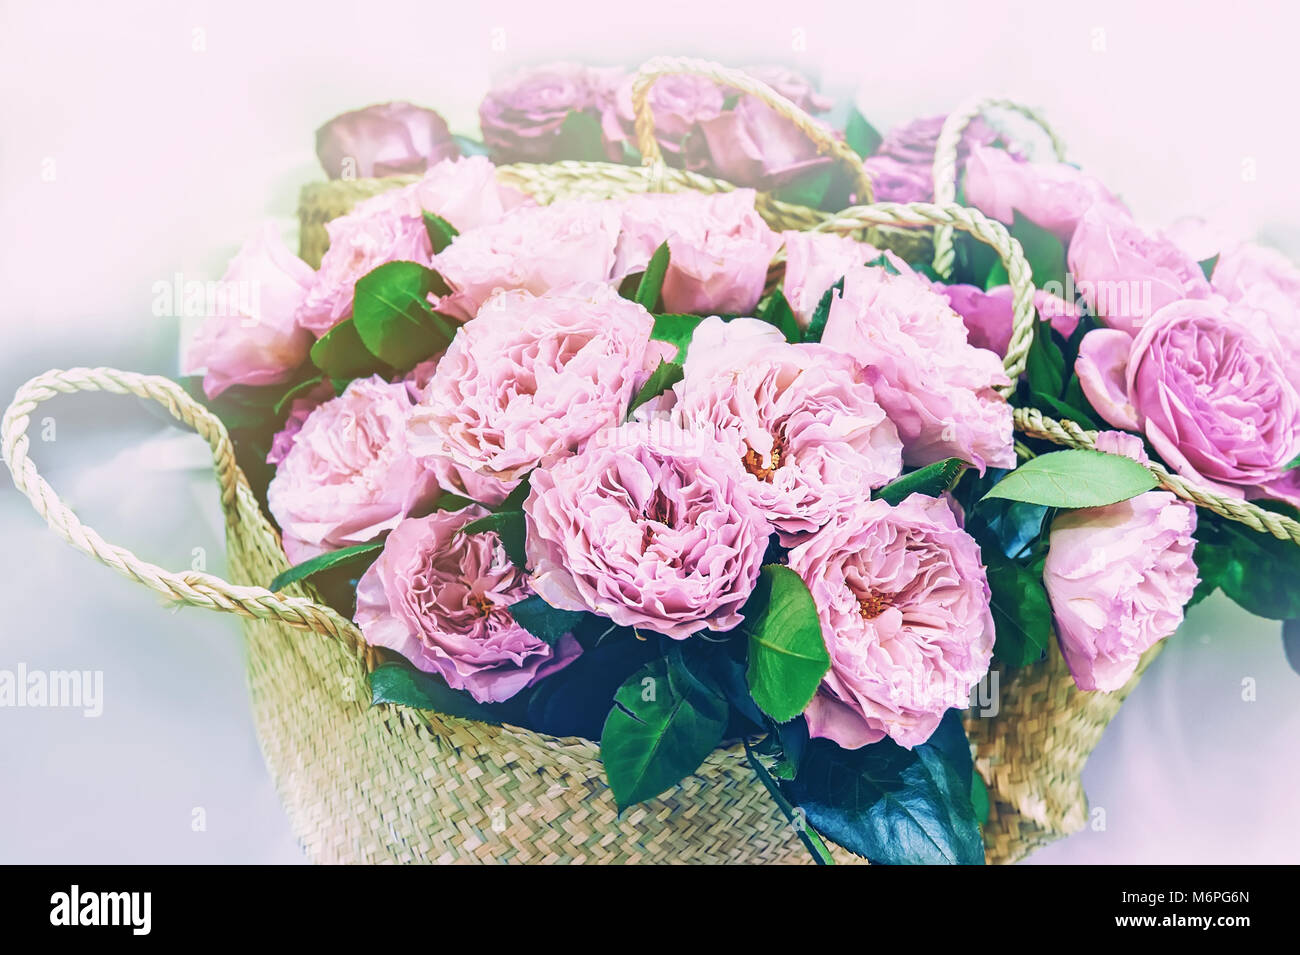 Roses peony modern elite varieties in a bouquet in wicker baskets as a gift. Close up. - Stock Image